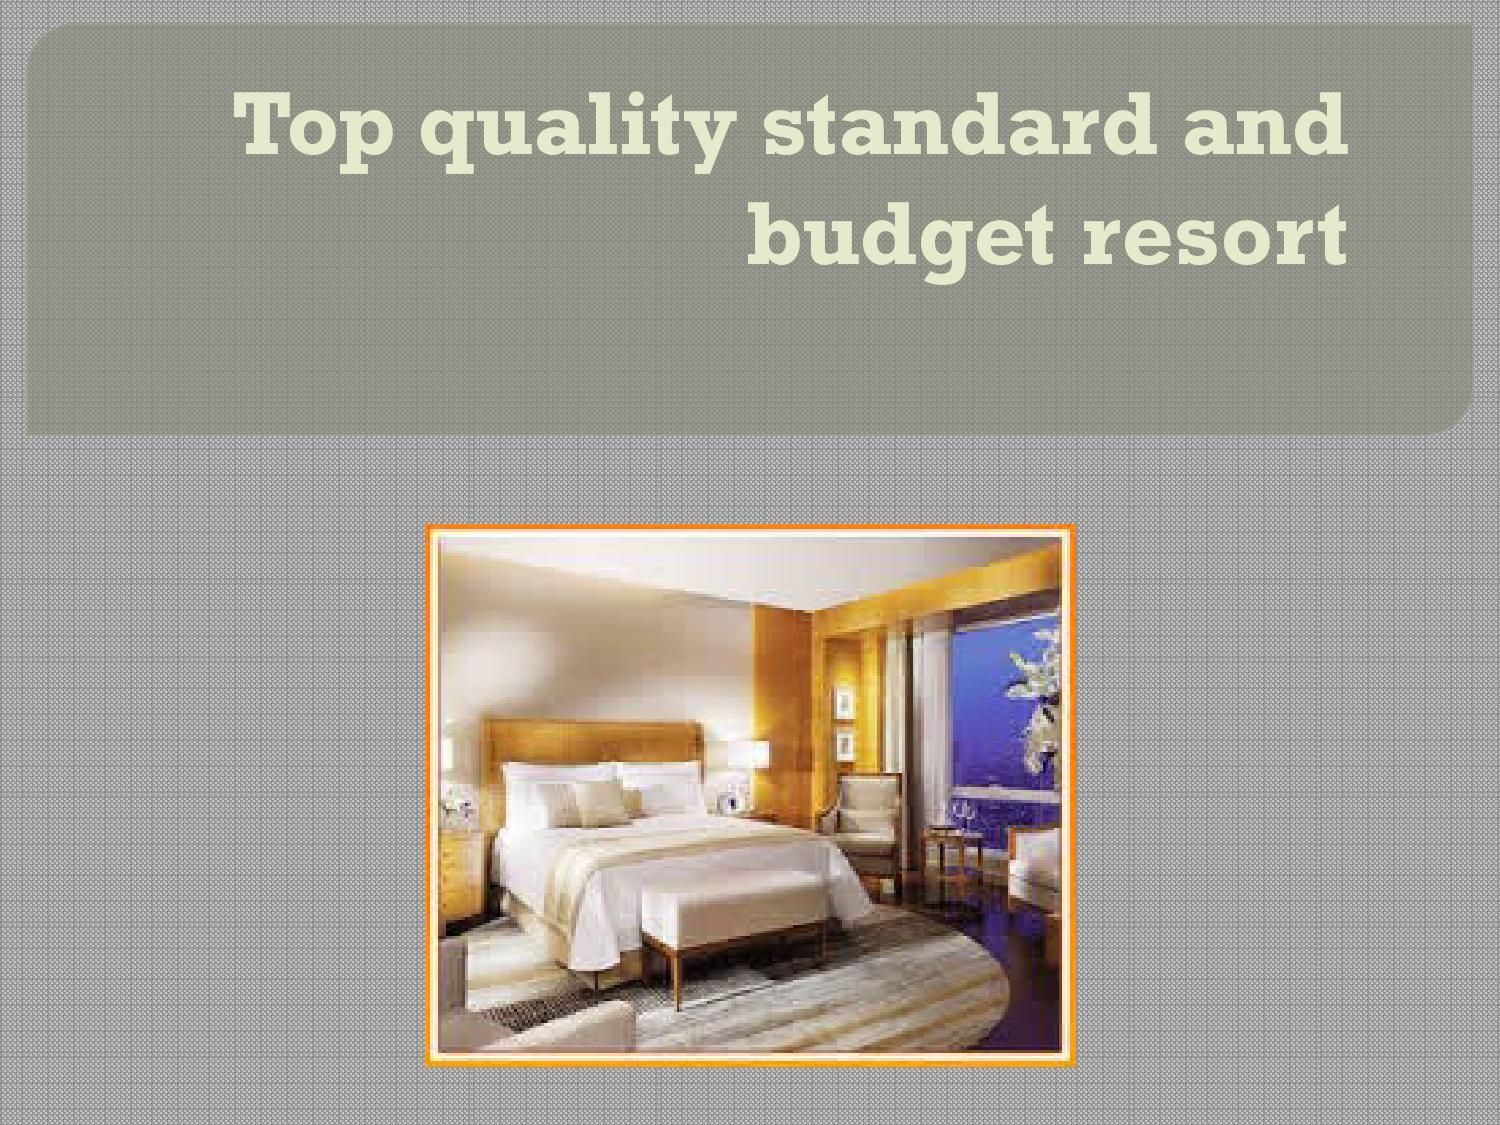 Top quality standard and budget resort  Cheap accommodations in Pune top quality standard resort areas are supplying with a cutting edge features. We provide you our standard economy areas through our 2 room's apartment that perfects for children holiday vacation with a perfect location with the town centre of Pune.